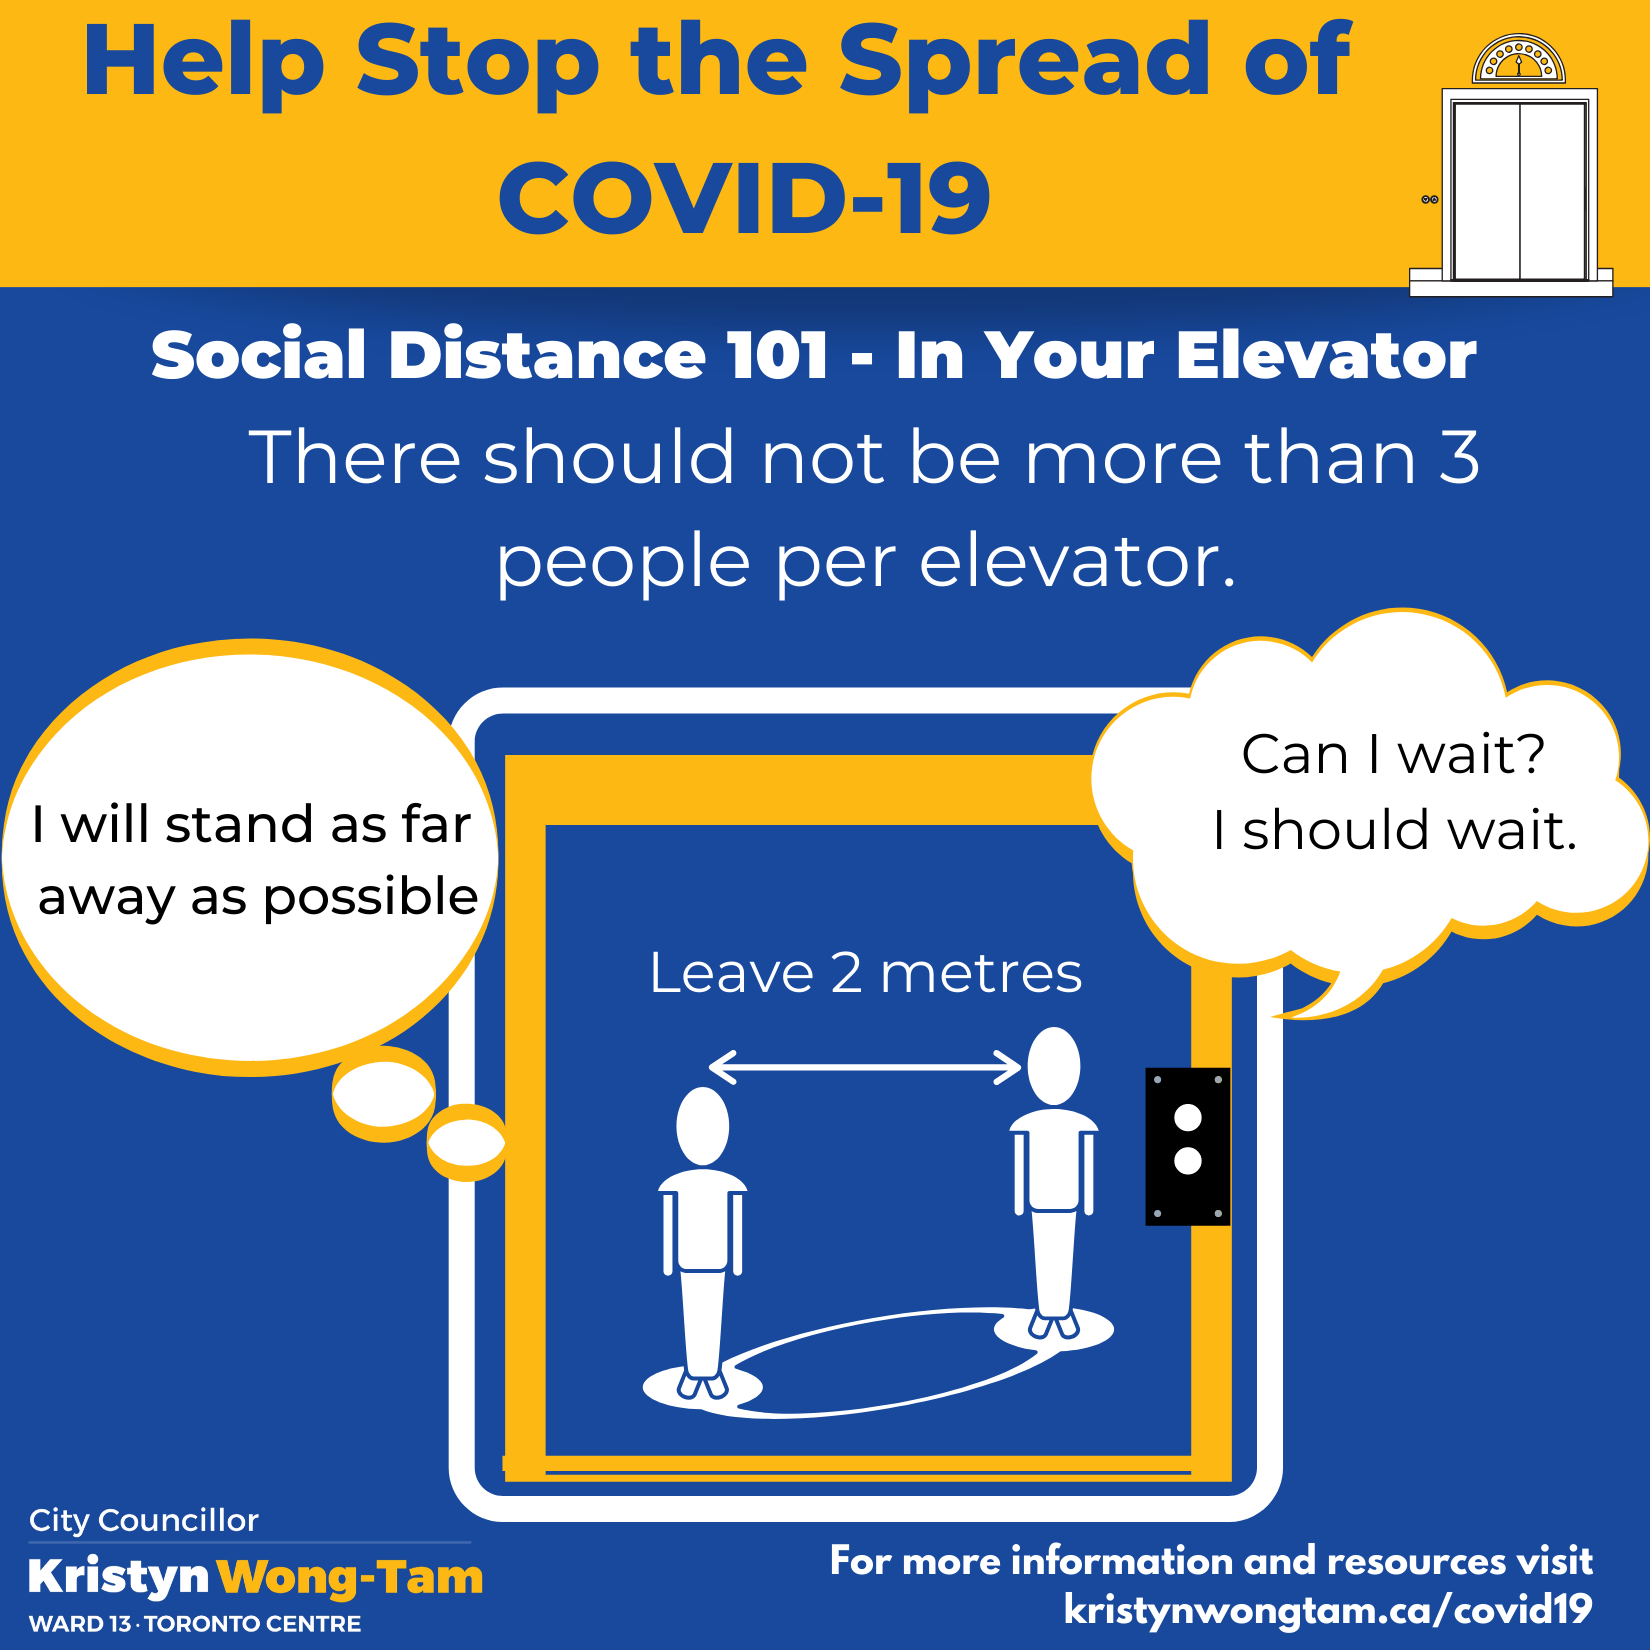 In Your Elevator